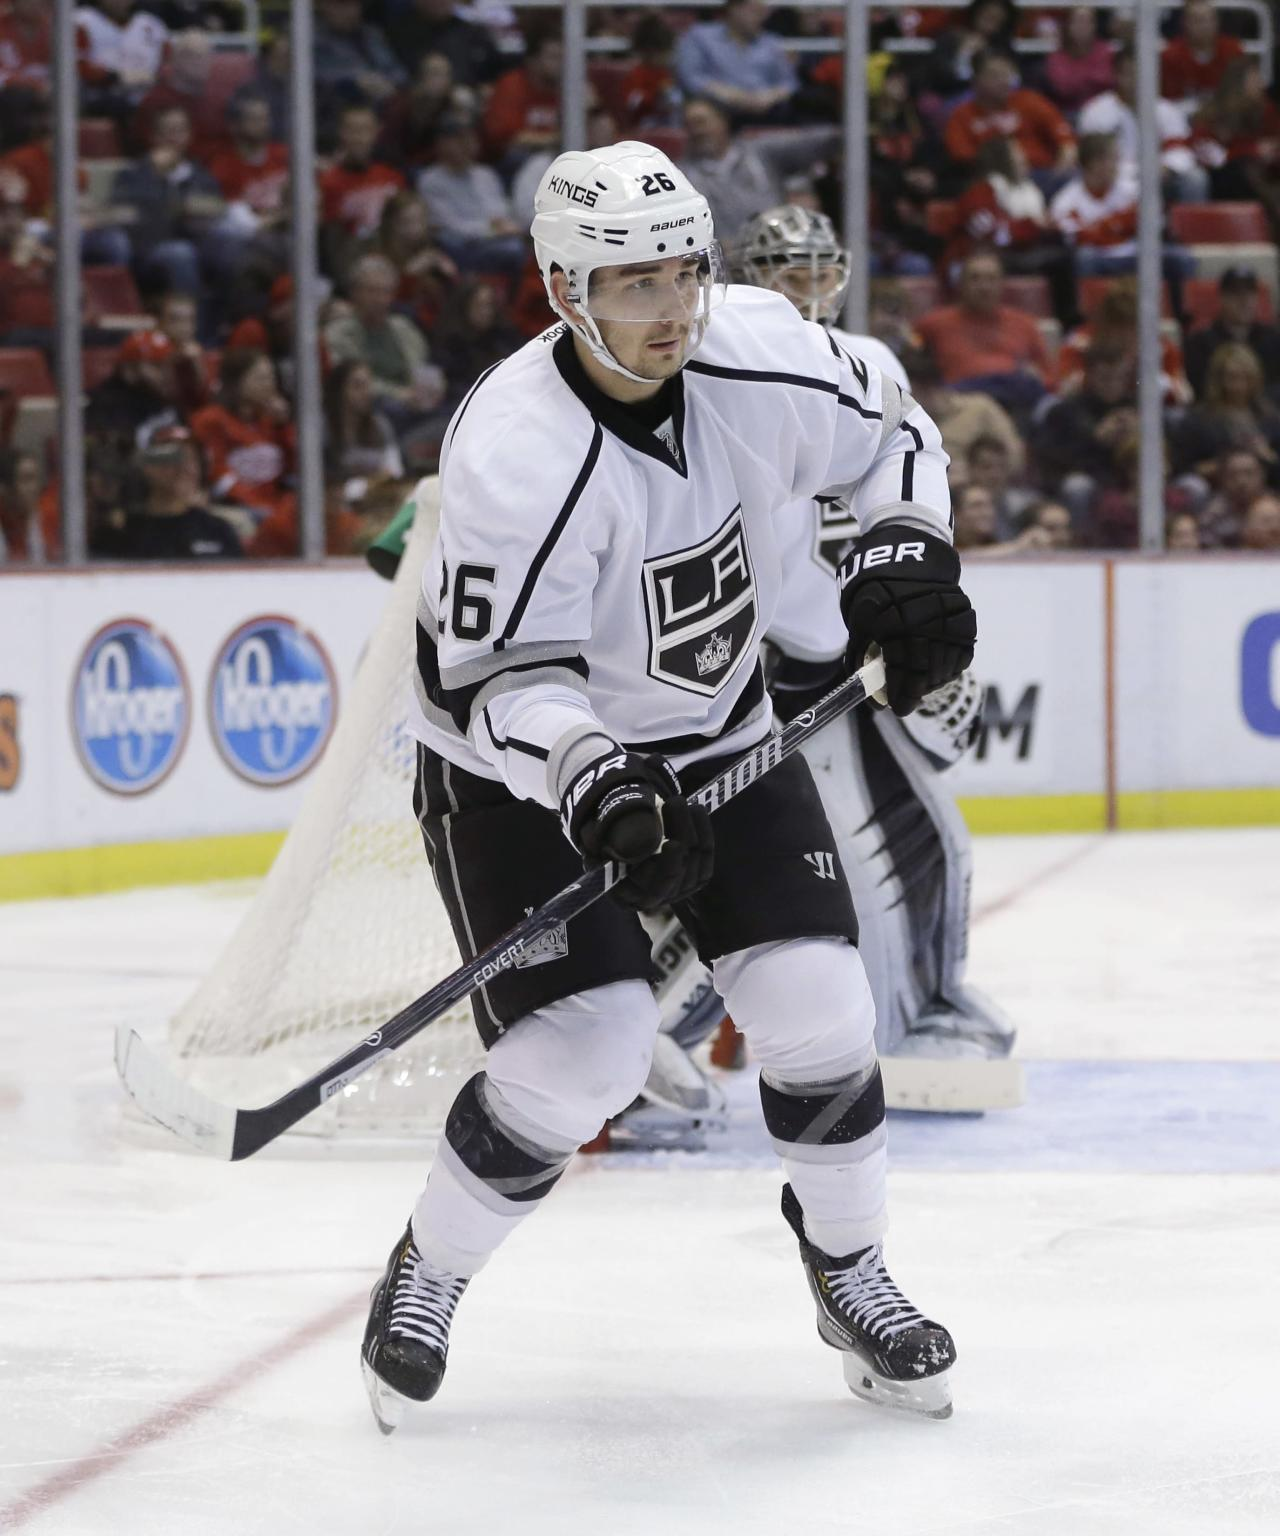 Slava Voynov 'clearly did not hit her' says lawyer (Yahoo Sports Exclusive)